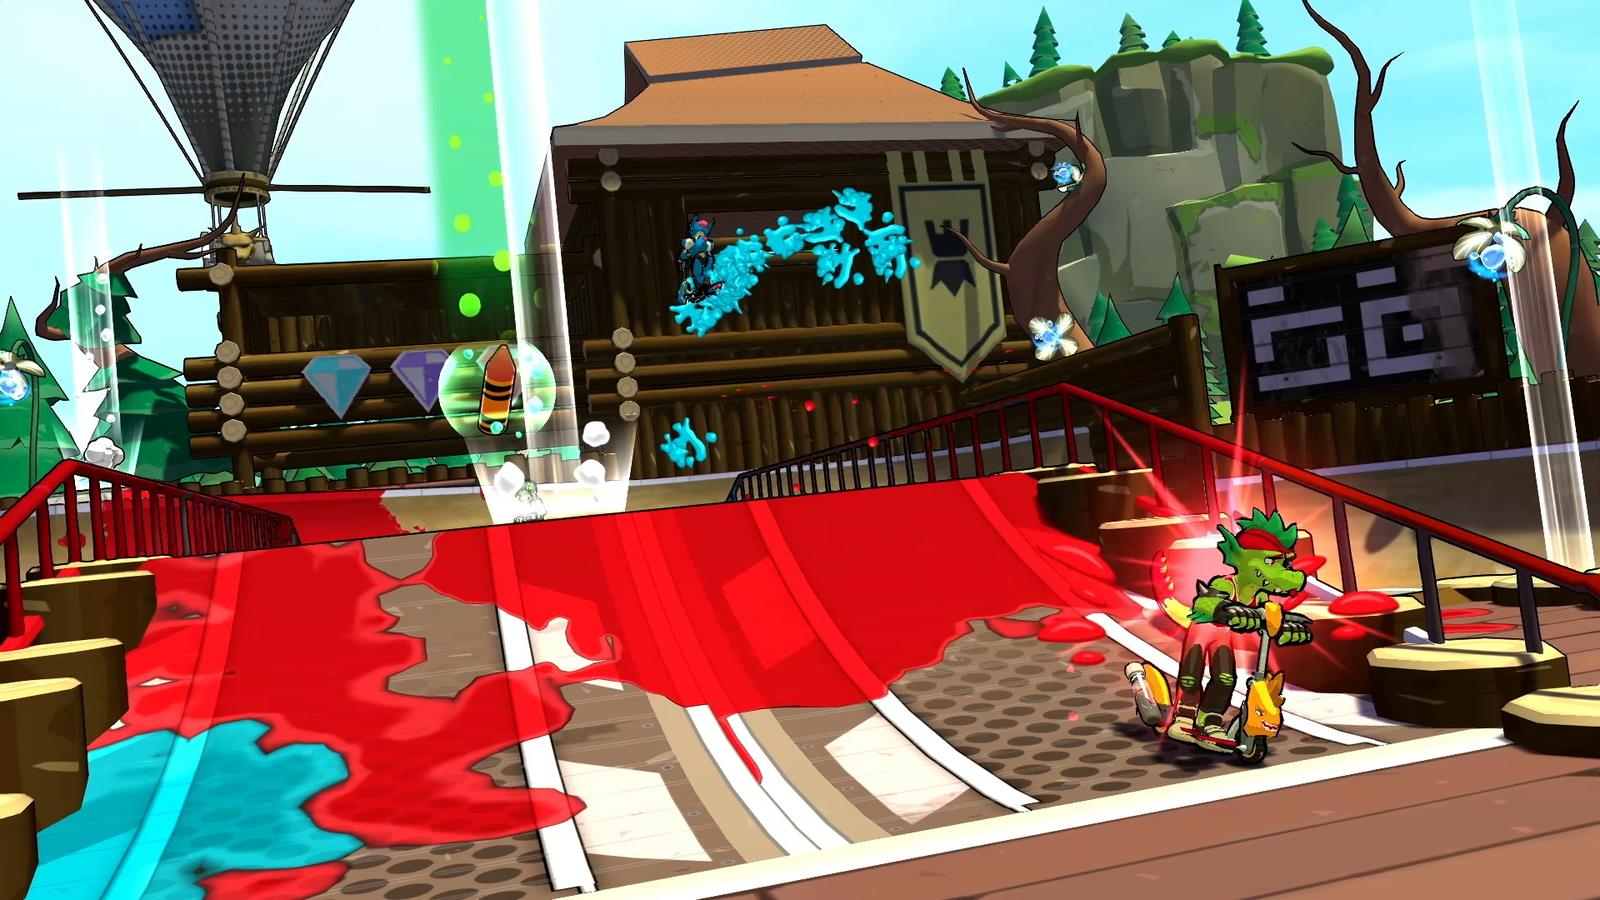 Crayola and Outright Games reveal Crayola Scoot for Switch ...